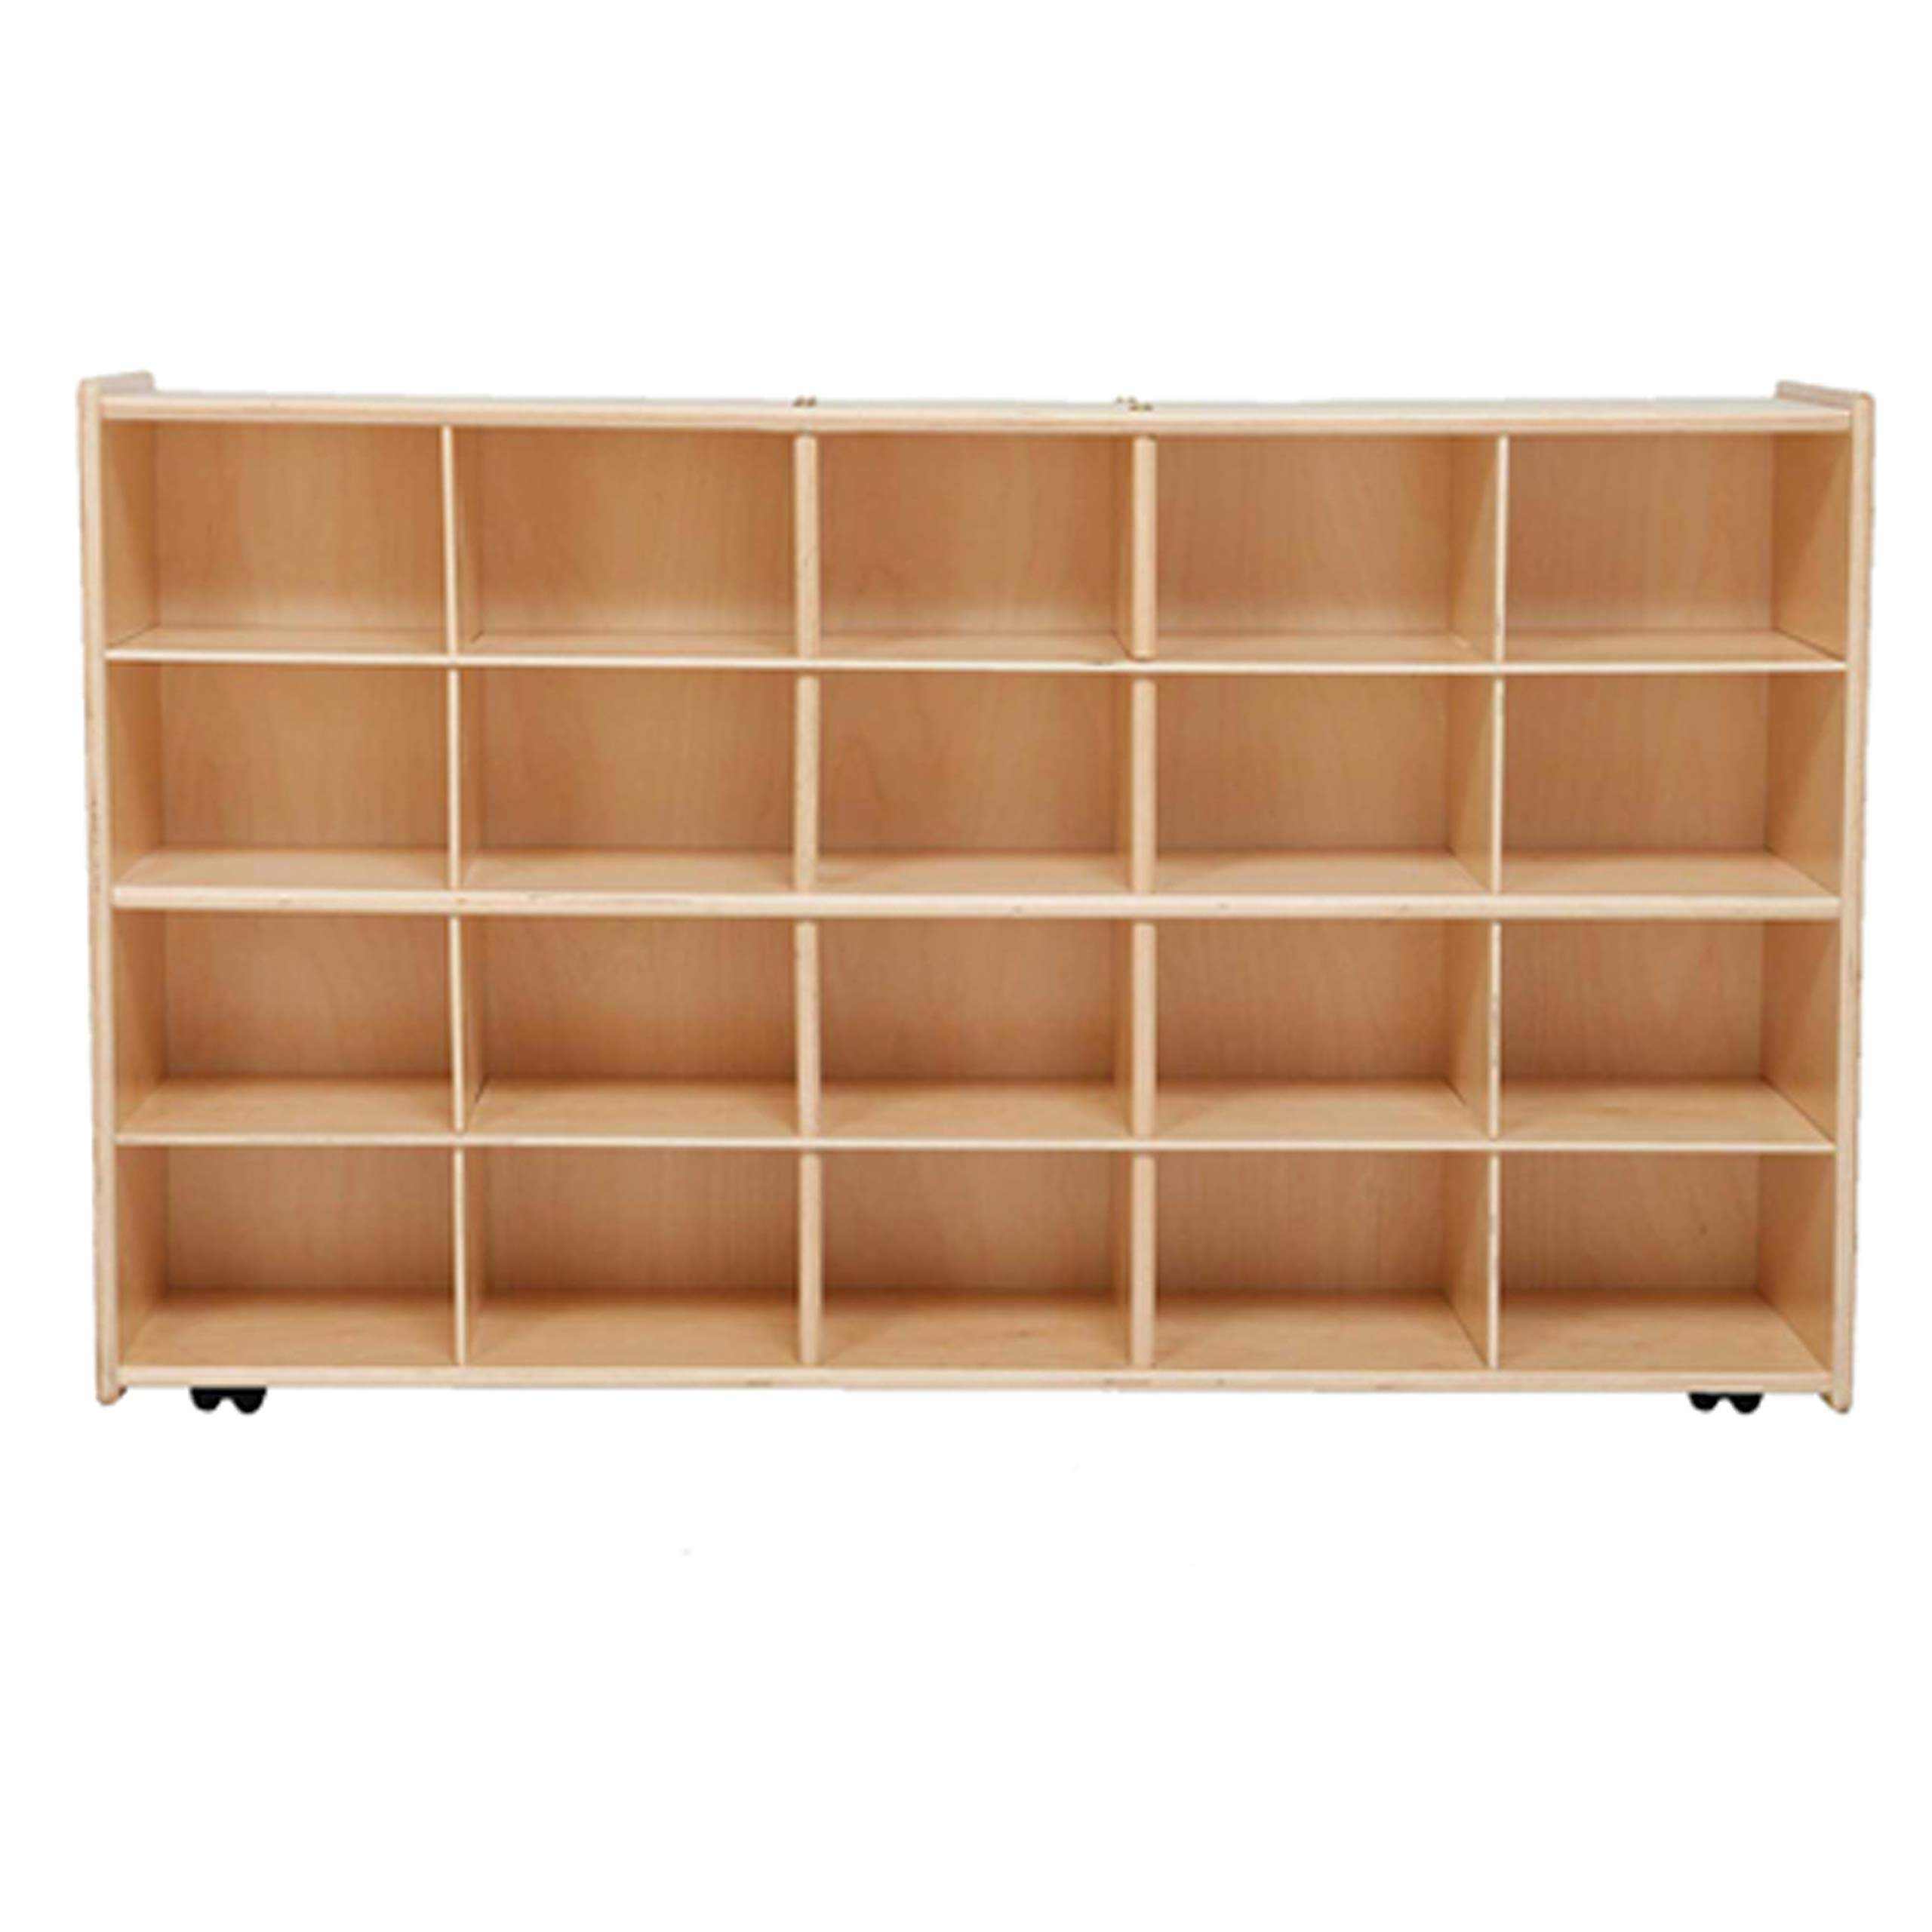 Contender Baltic Birch 20 Cubby Storage Unit - Assembled with Casters by Contender